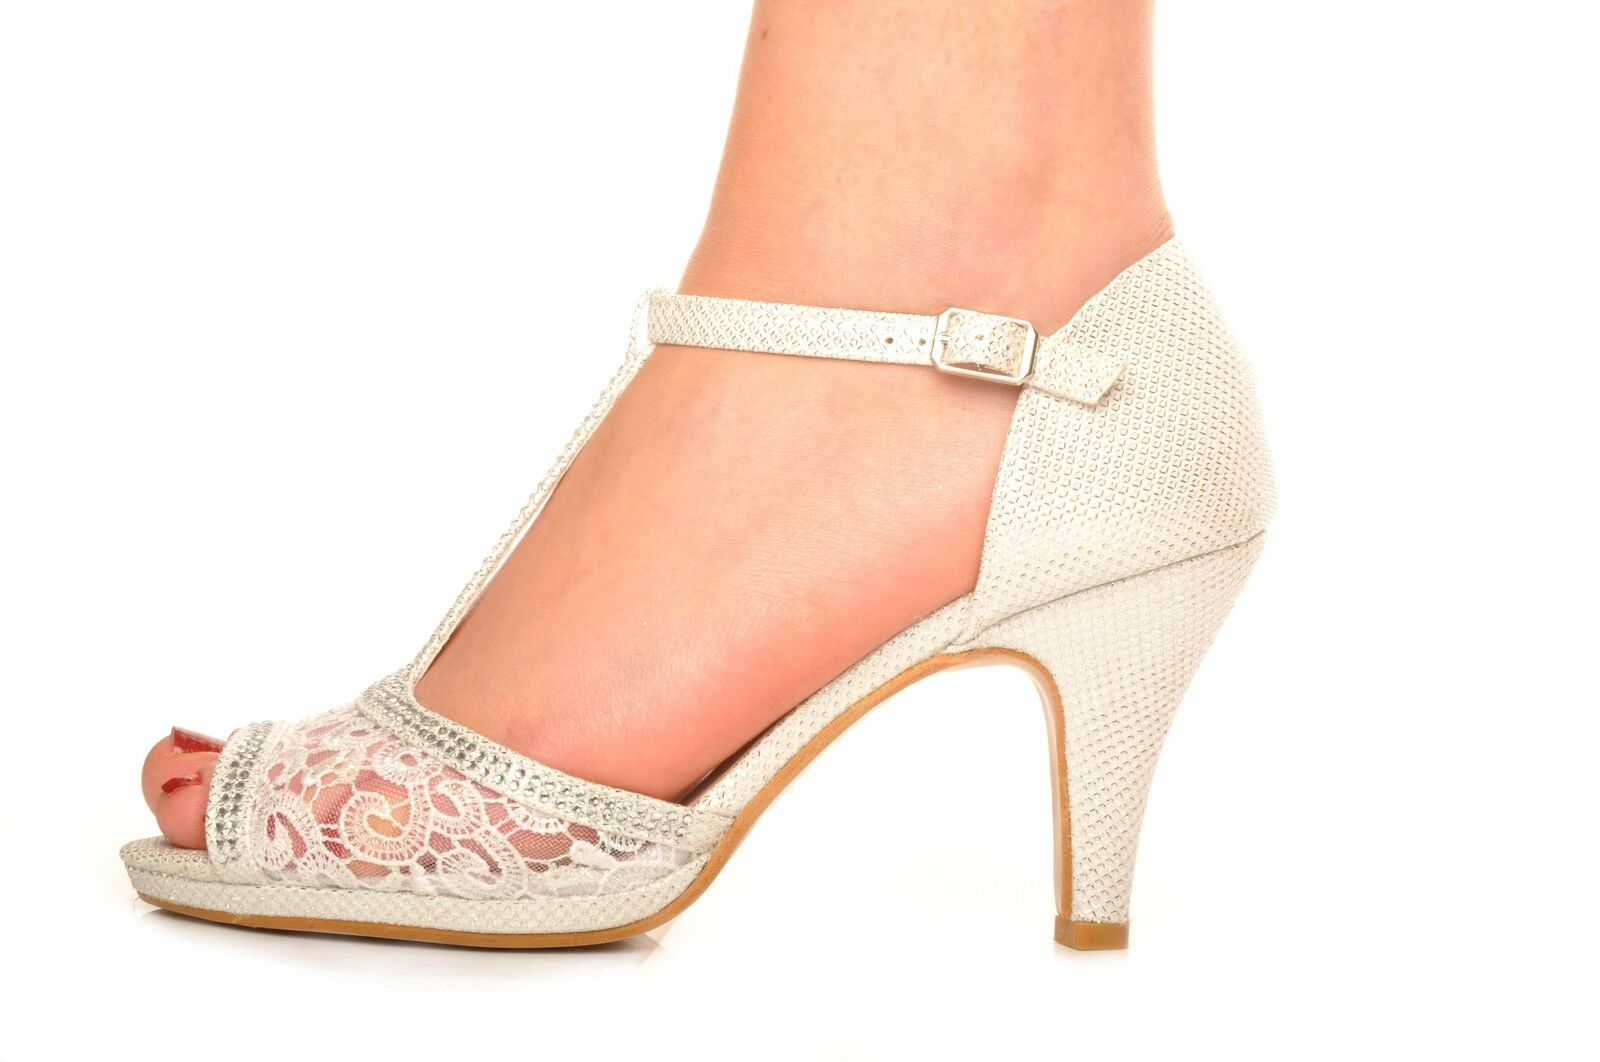 Off White Silver Glitter Lace Diamante Wedding Heels Evening Prom Peeptoe Shoes